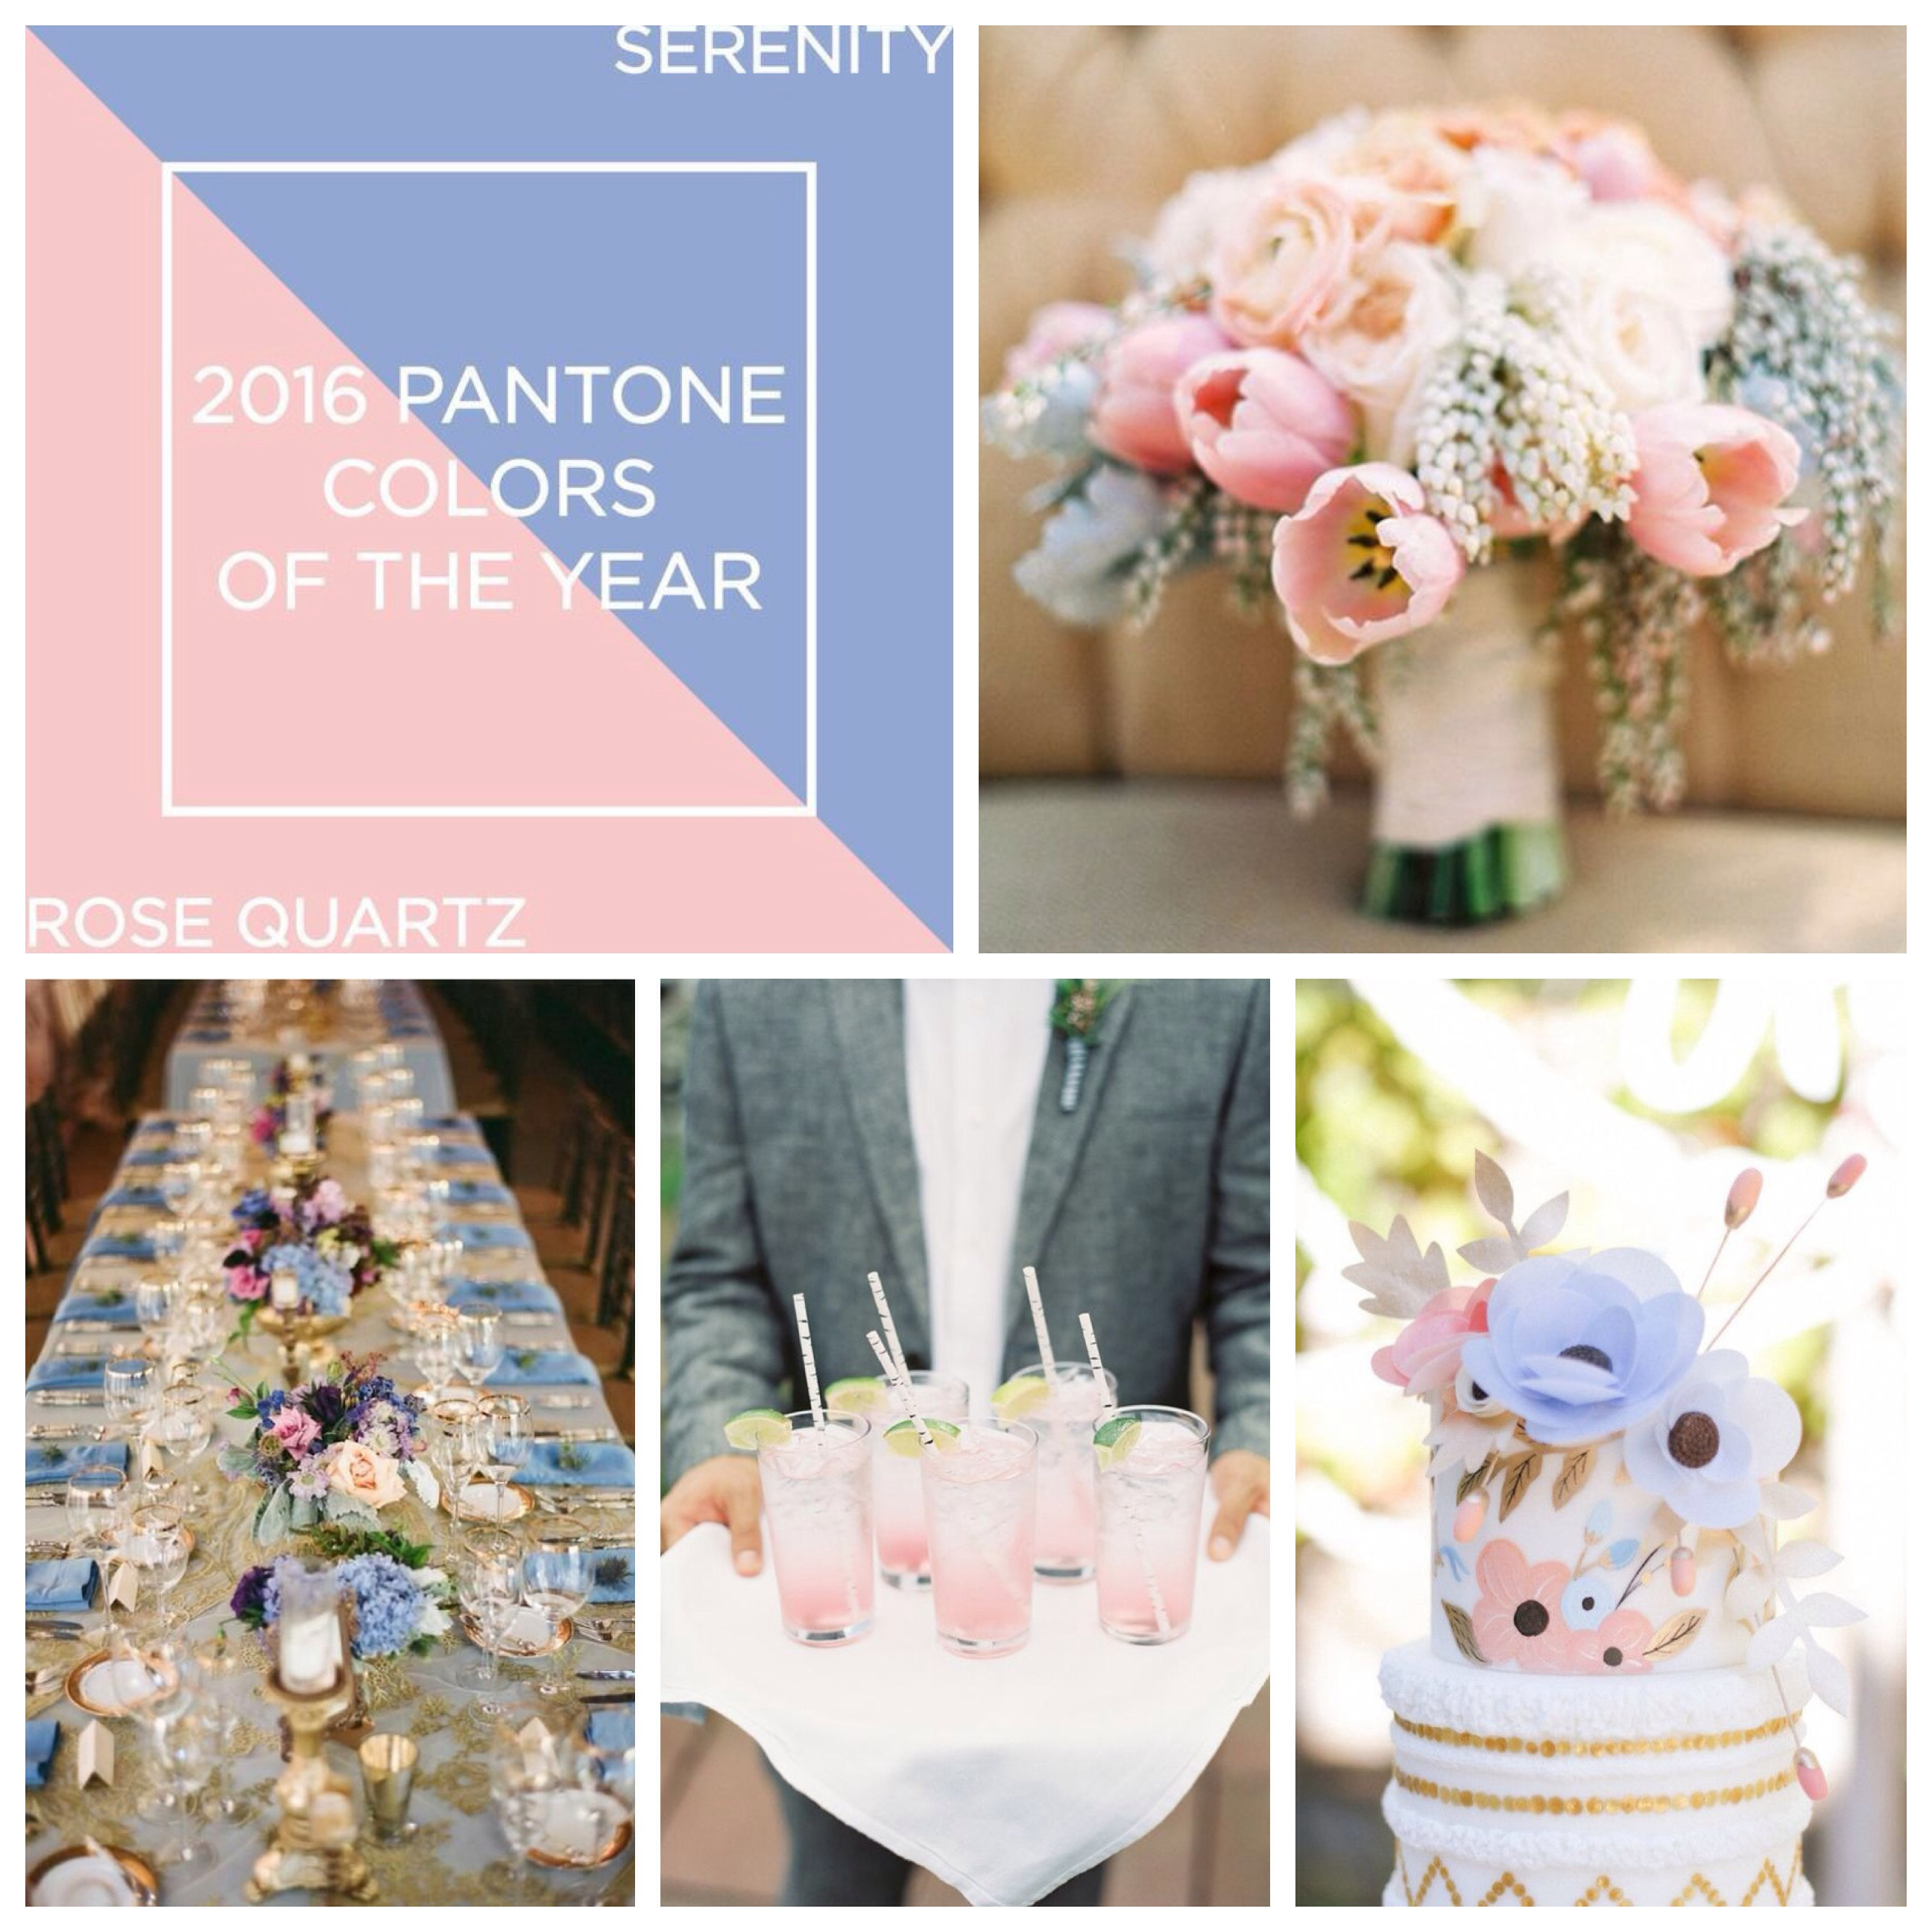 Wedding Ideas Inspired by the Pantone Colour of the Year 2016